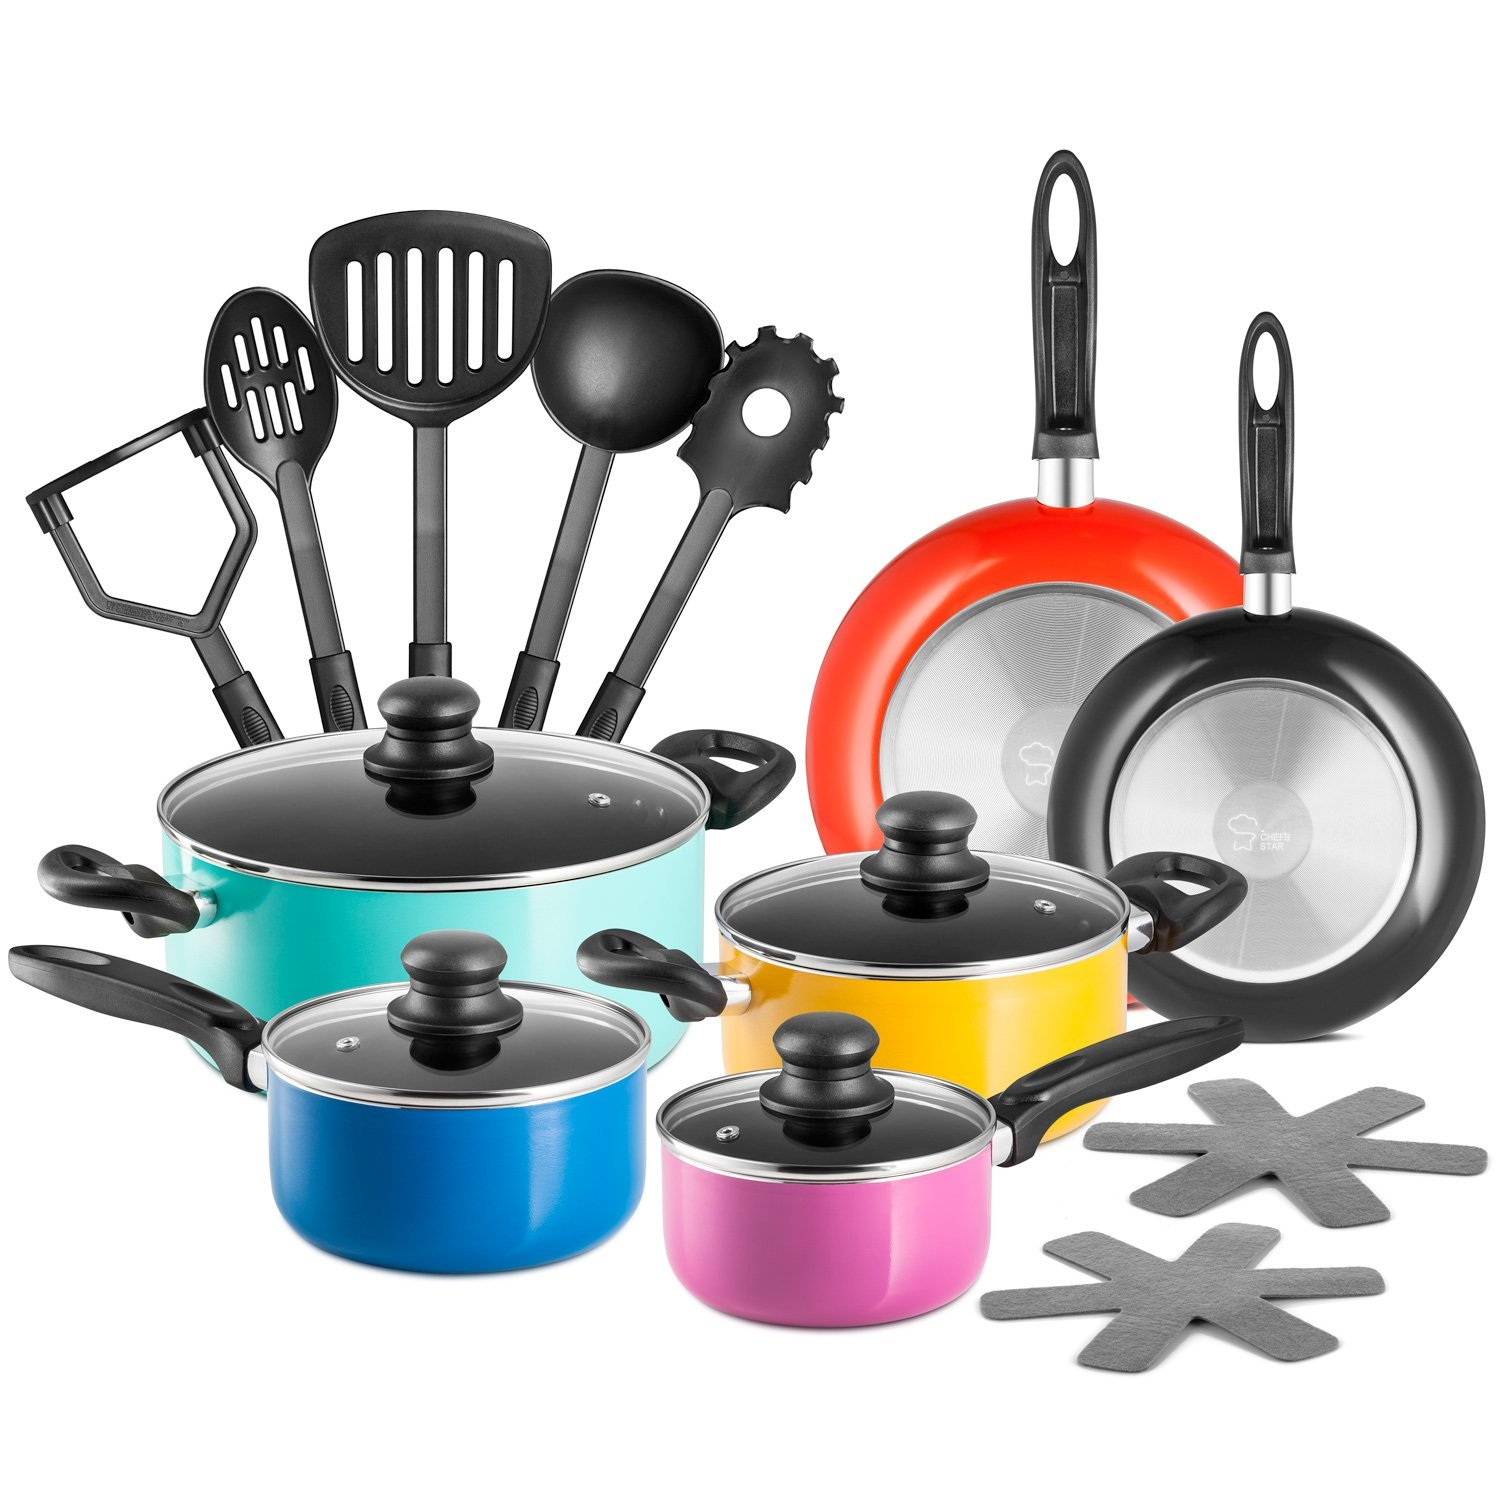 Chef's Star 17 Piece Professional Grade Aluminum Non-stick Pots & Pans Set Induction Ready Cookware Set... by Unassigned